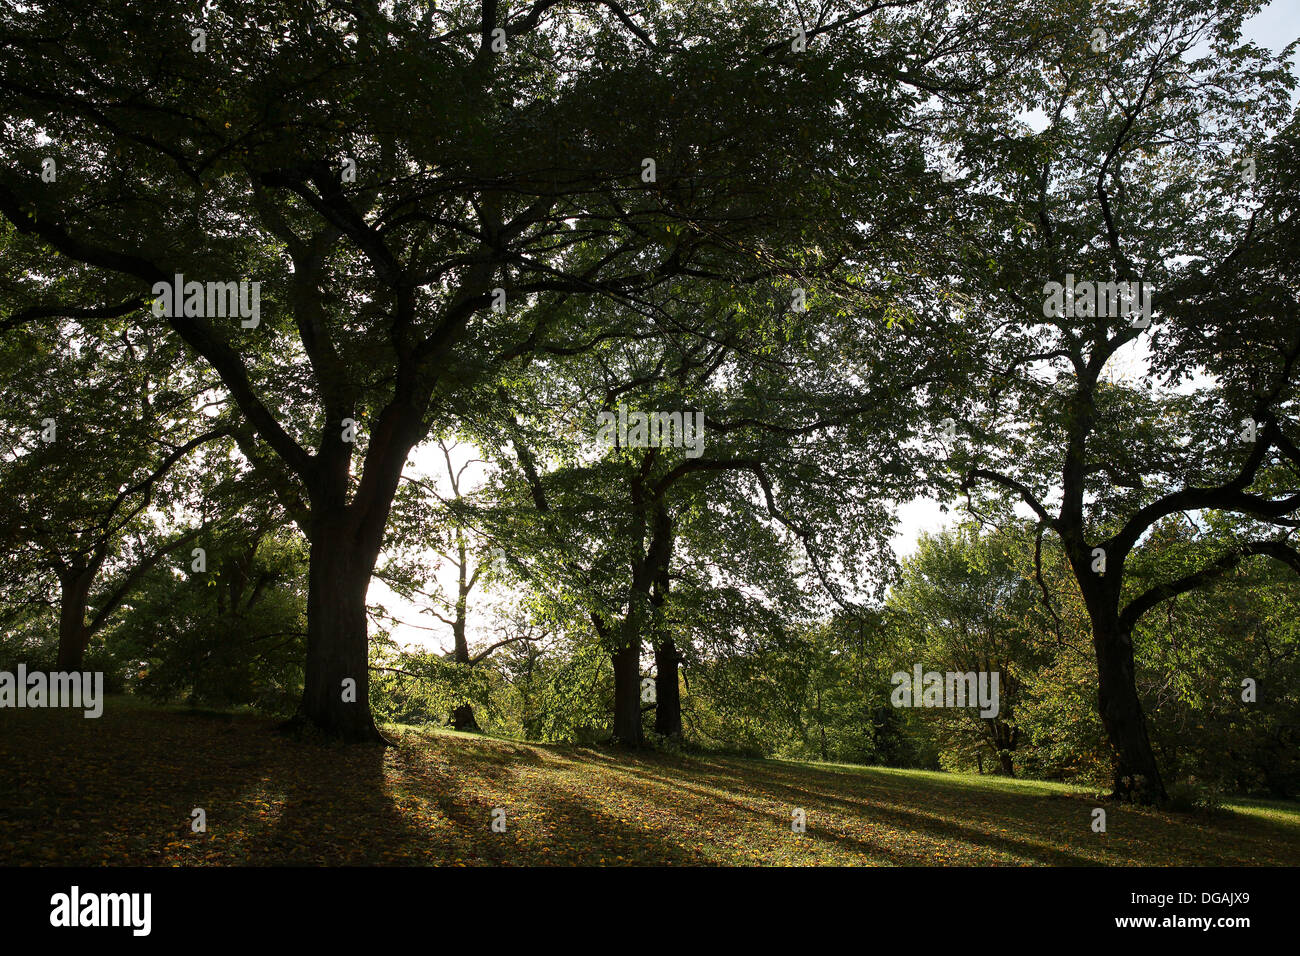 Arnold Arboretum, Boston, Massachusetts, USA Photo Stock